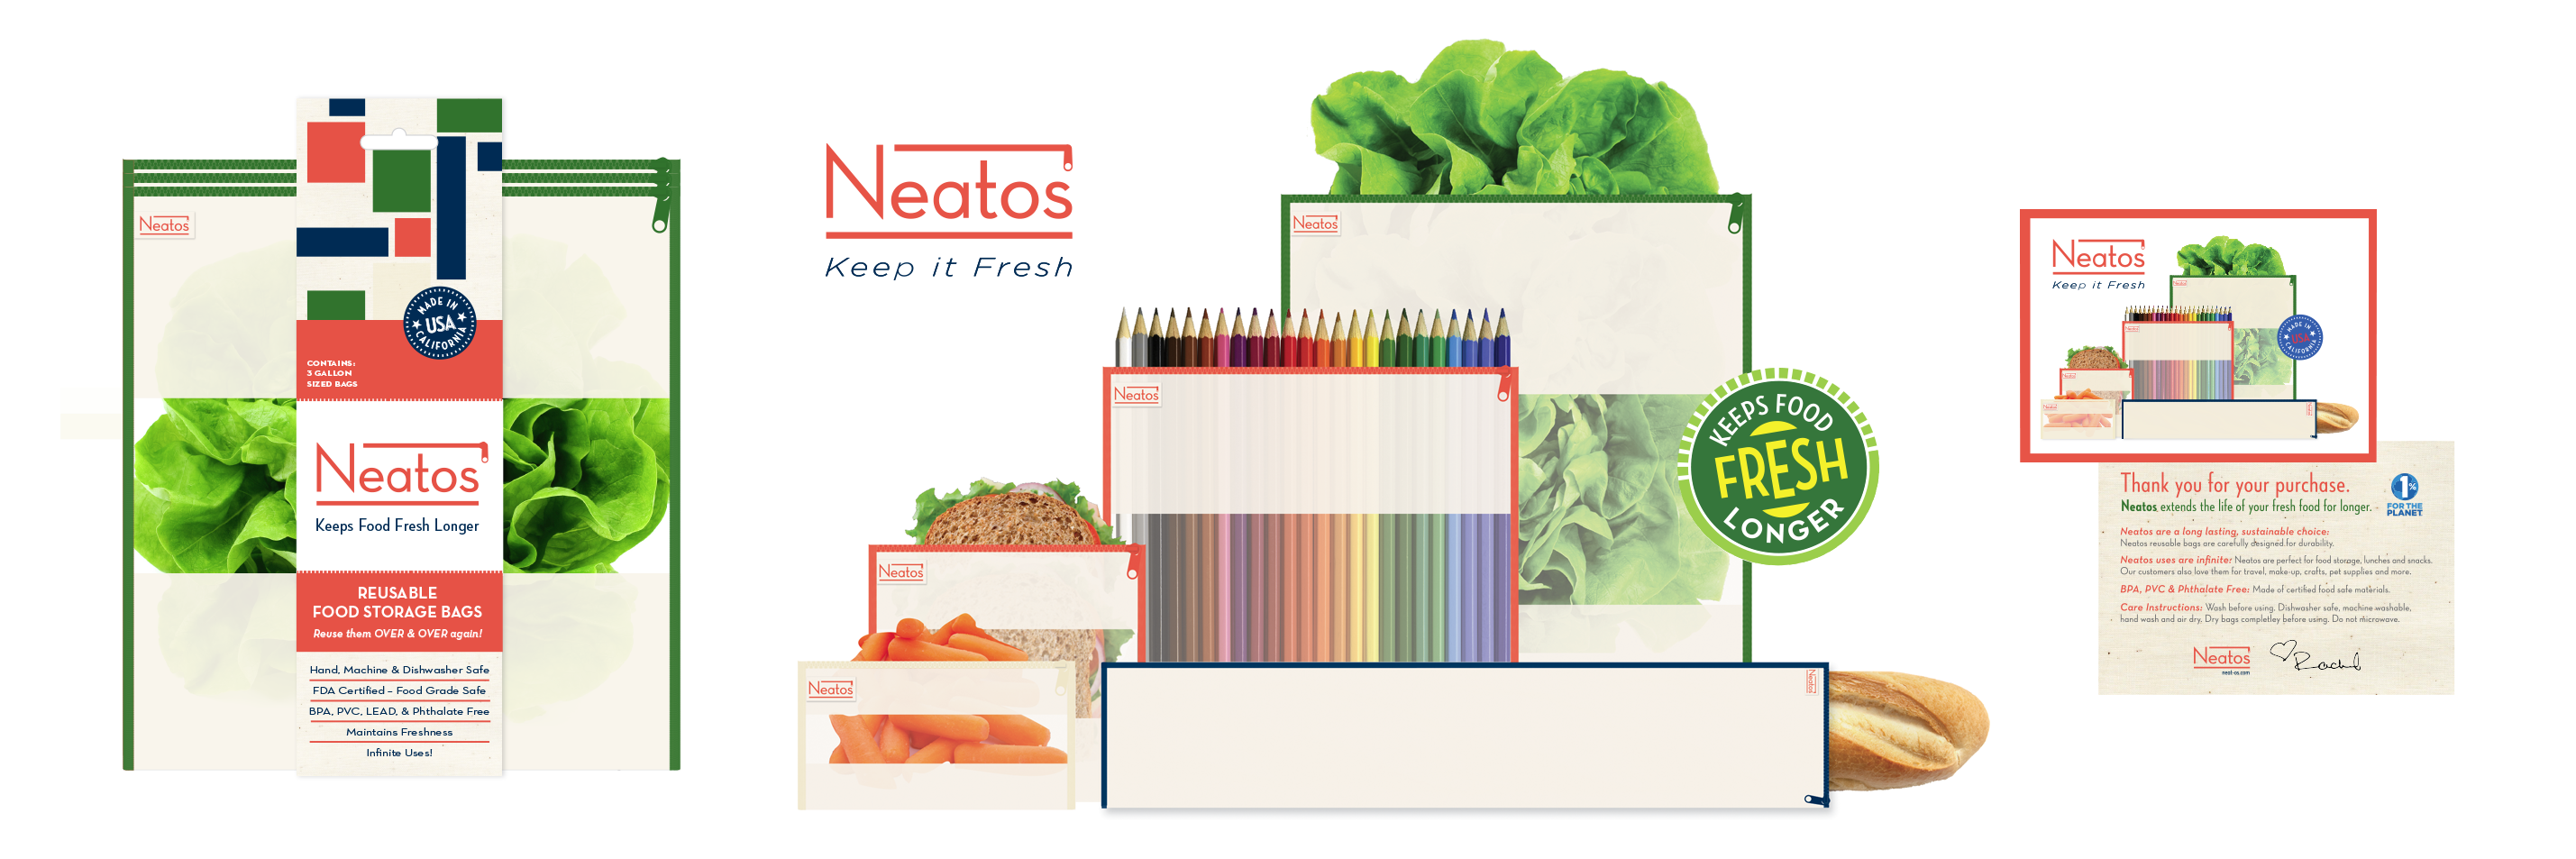 Neatos Reusable Bags